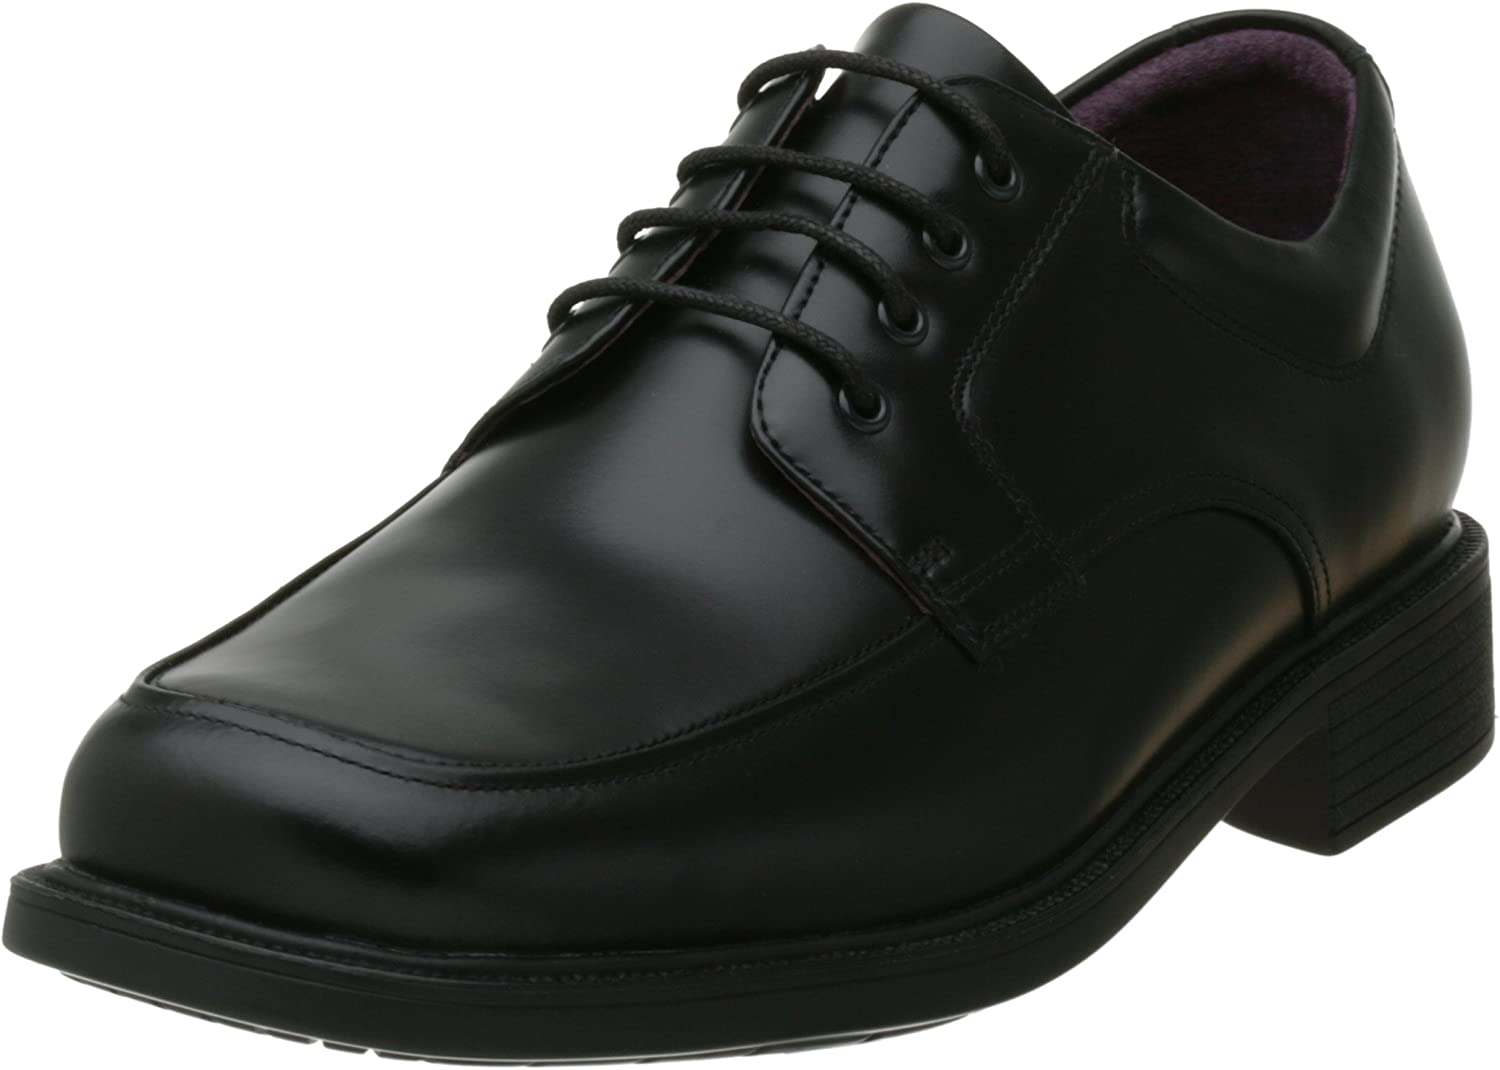 Direct sale of manufacturer Rockport Men's Oxford- Limited price Conor